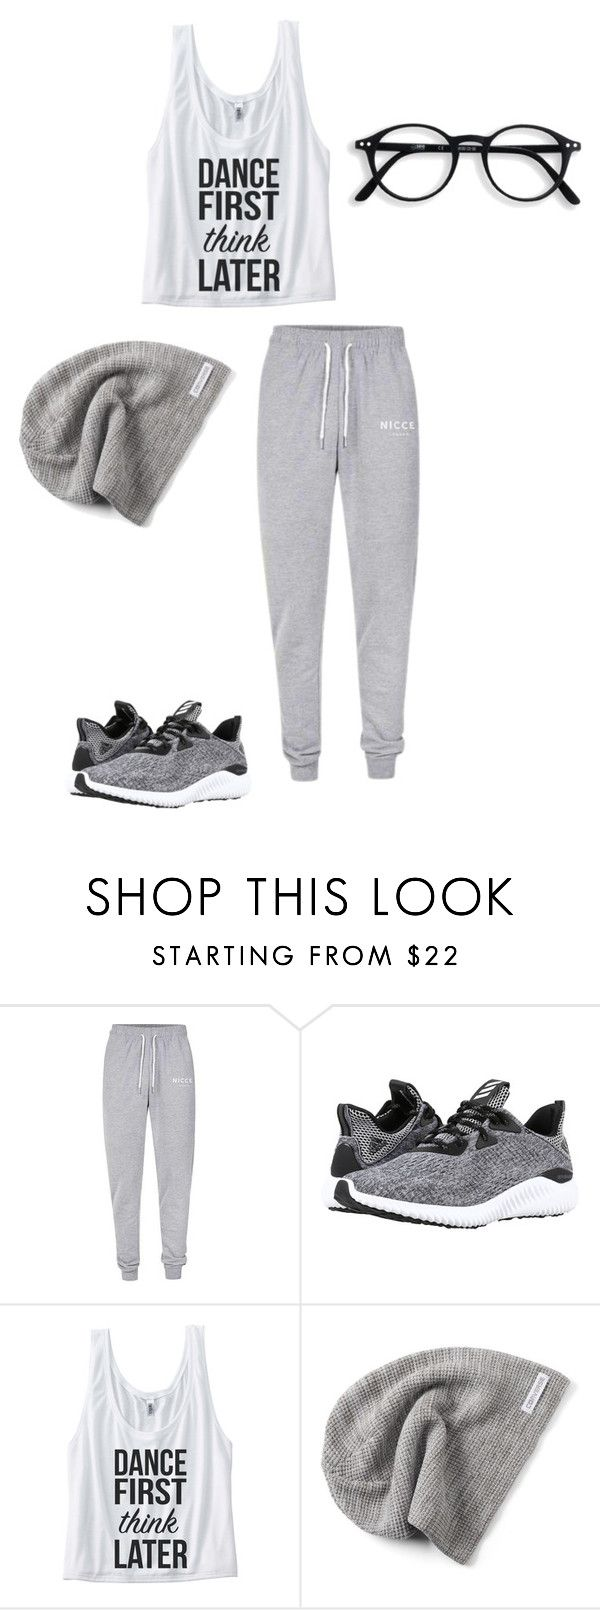 """untitled"" by sirensspeak ❤ liked on Polyvore featuring Nicce, adidas and Converse"